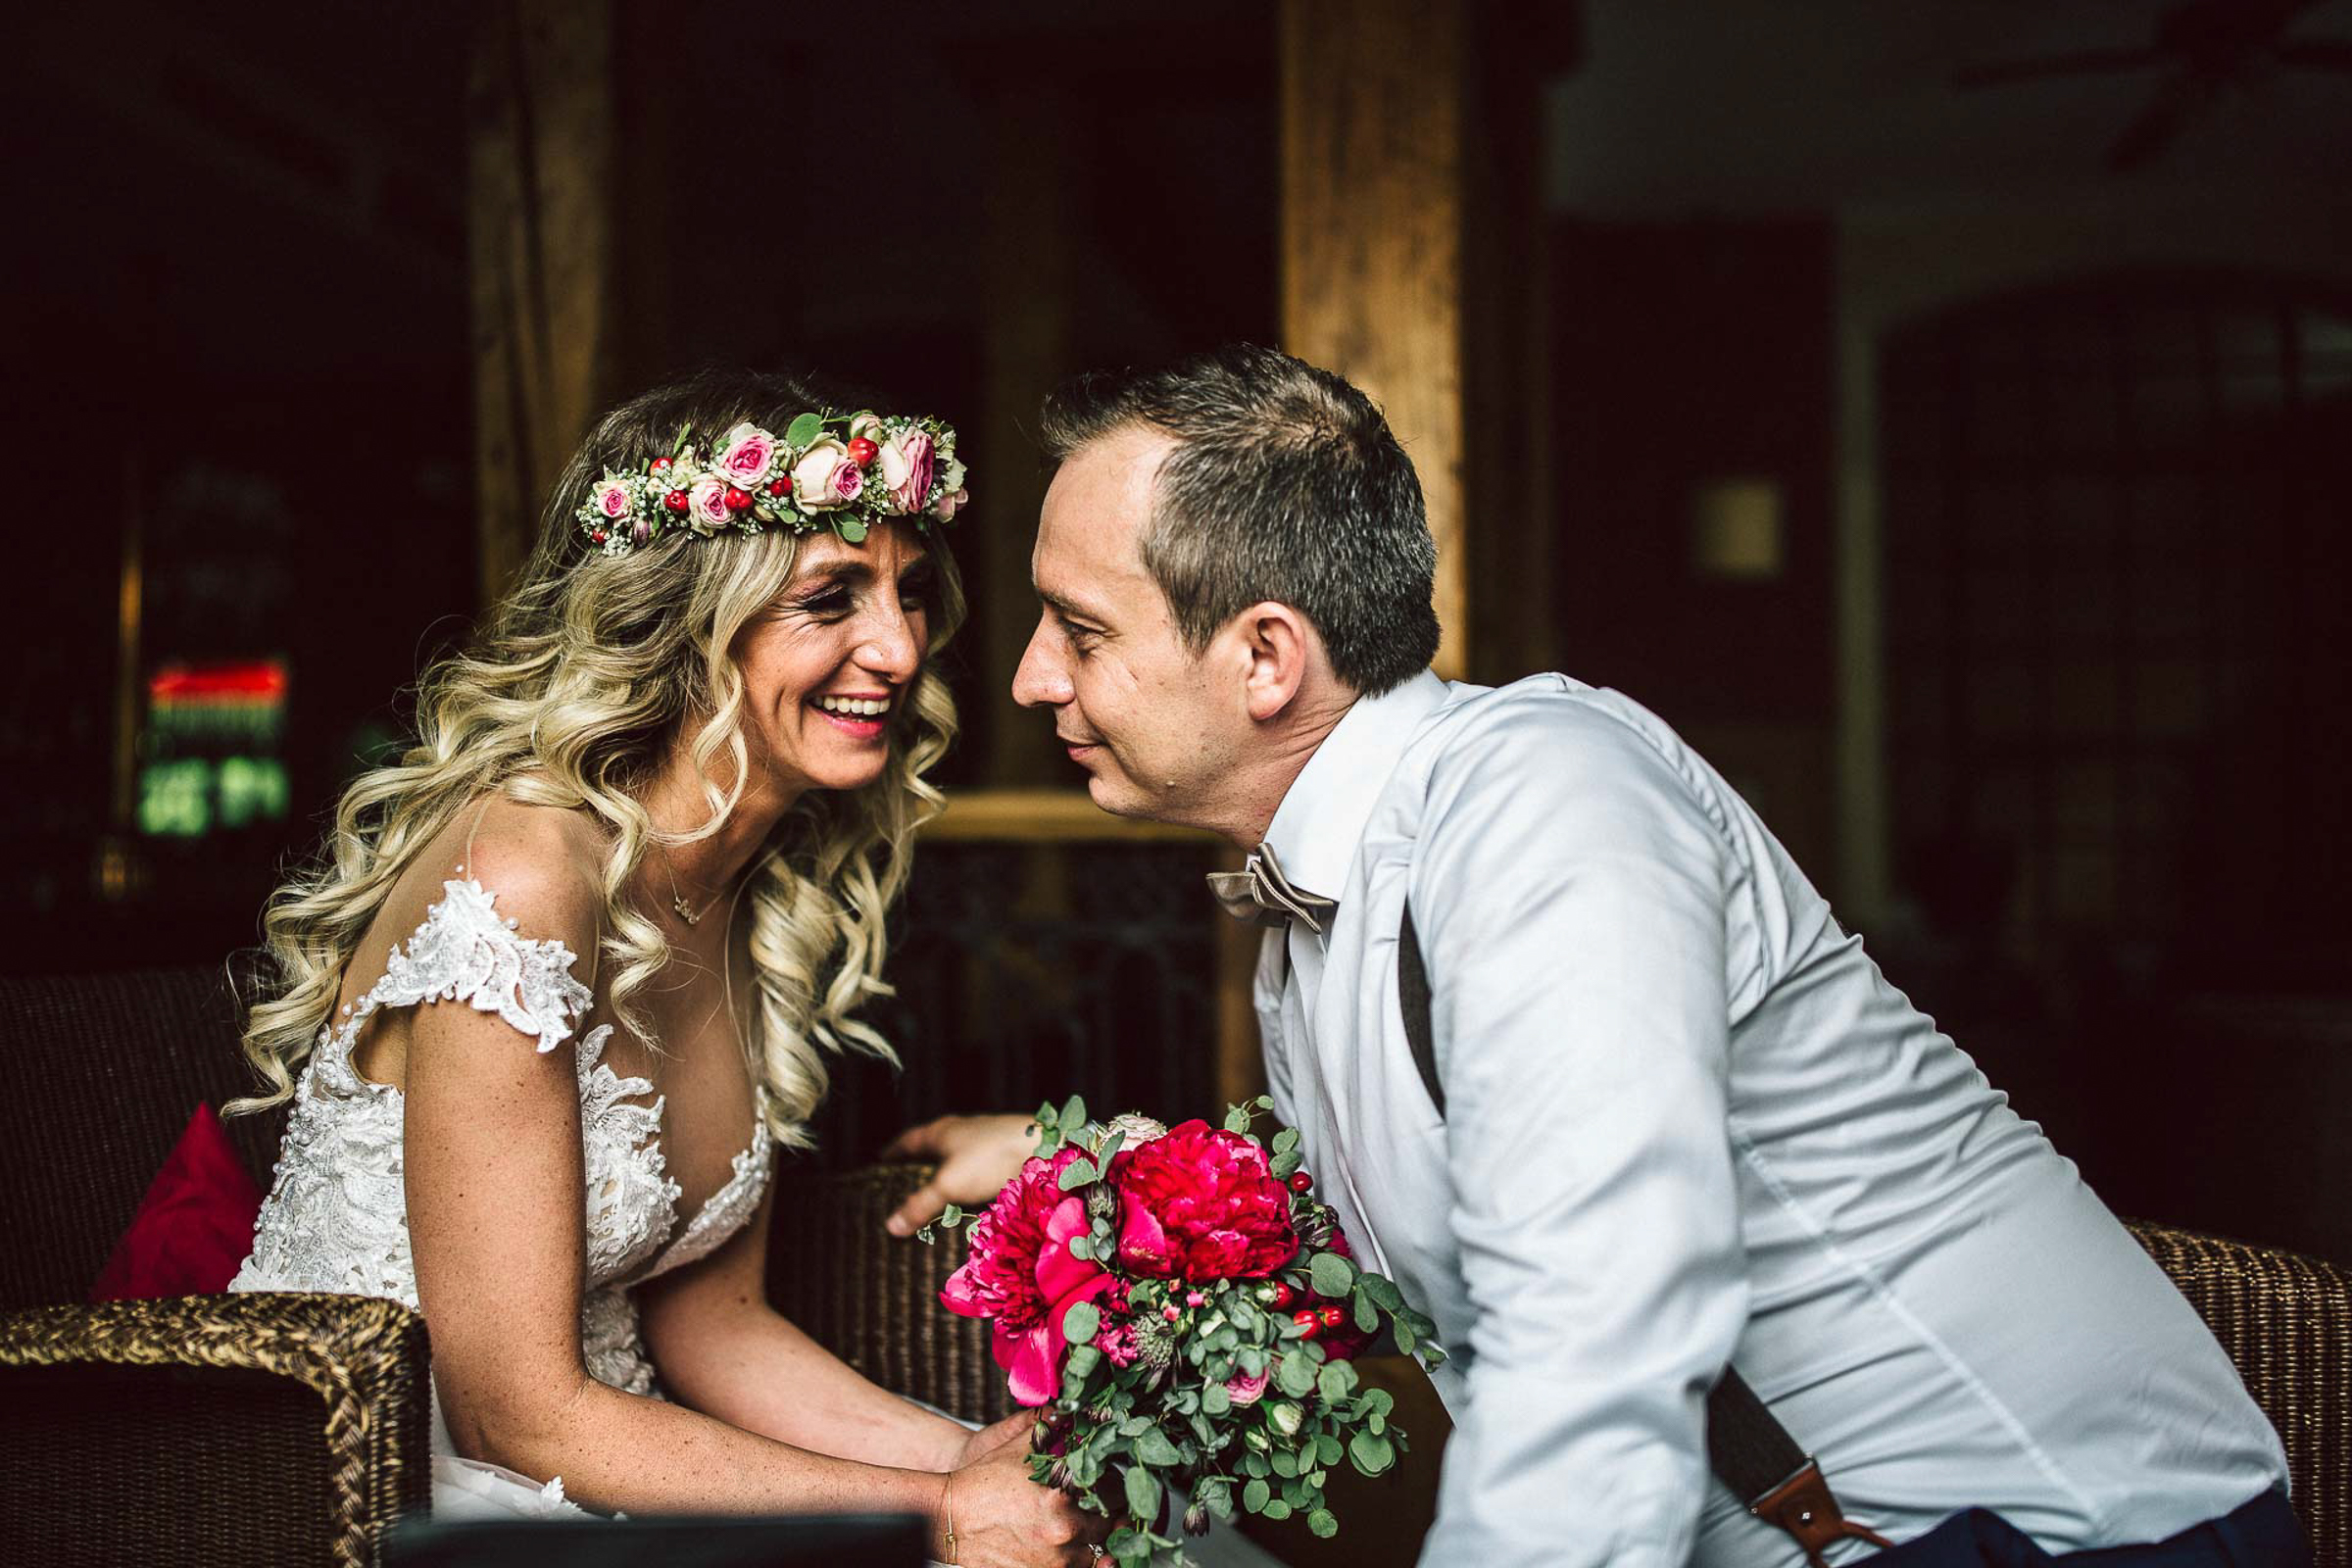 bride and groom sweet moment together- photo by FineArt Weddings | Photography